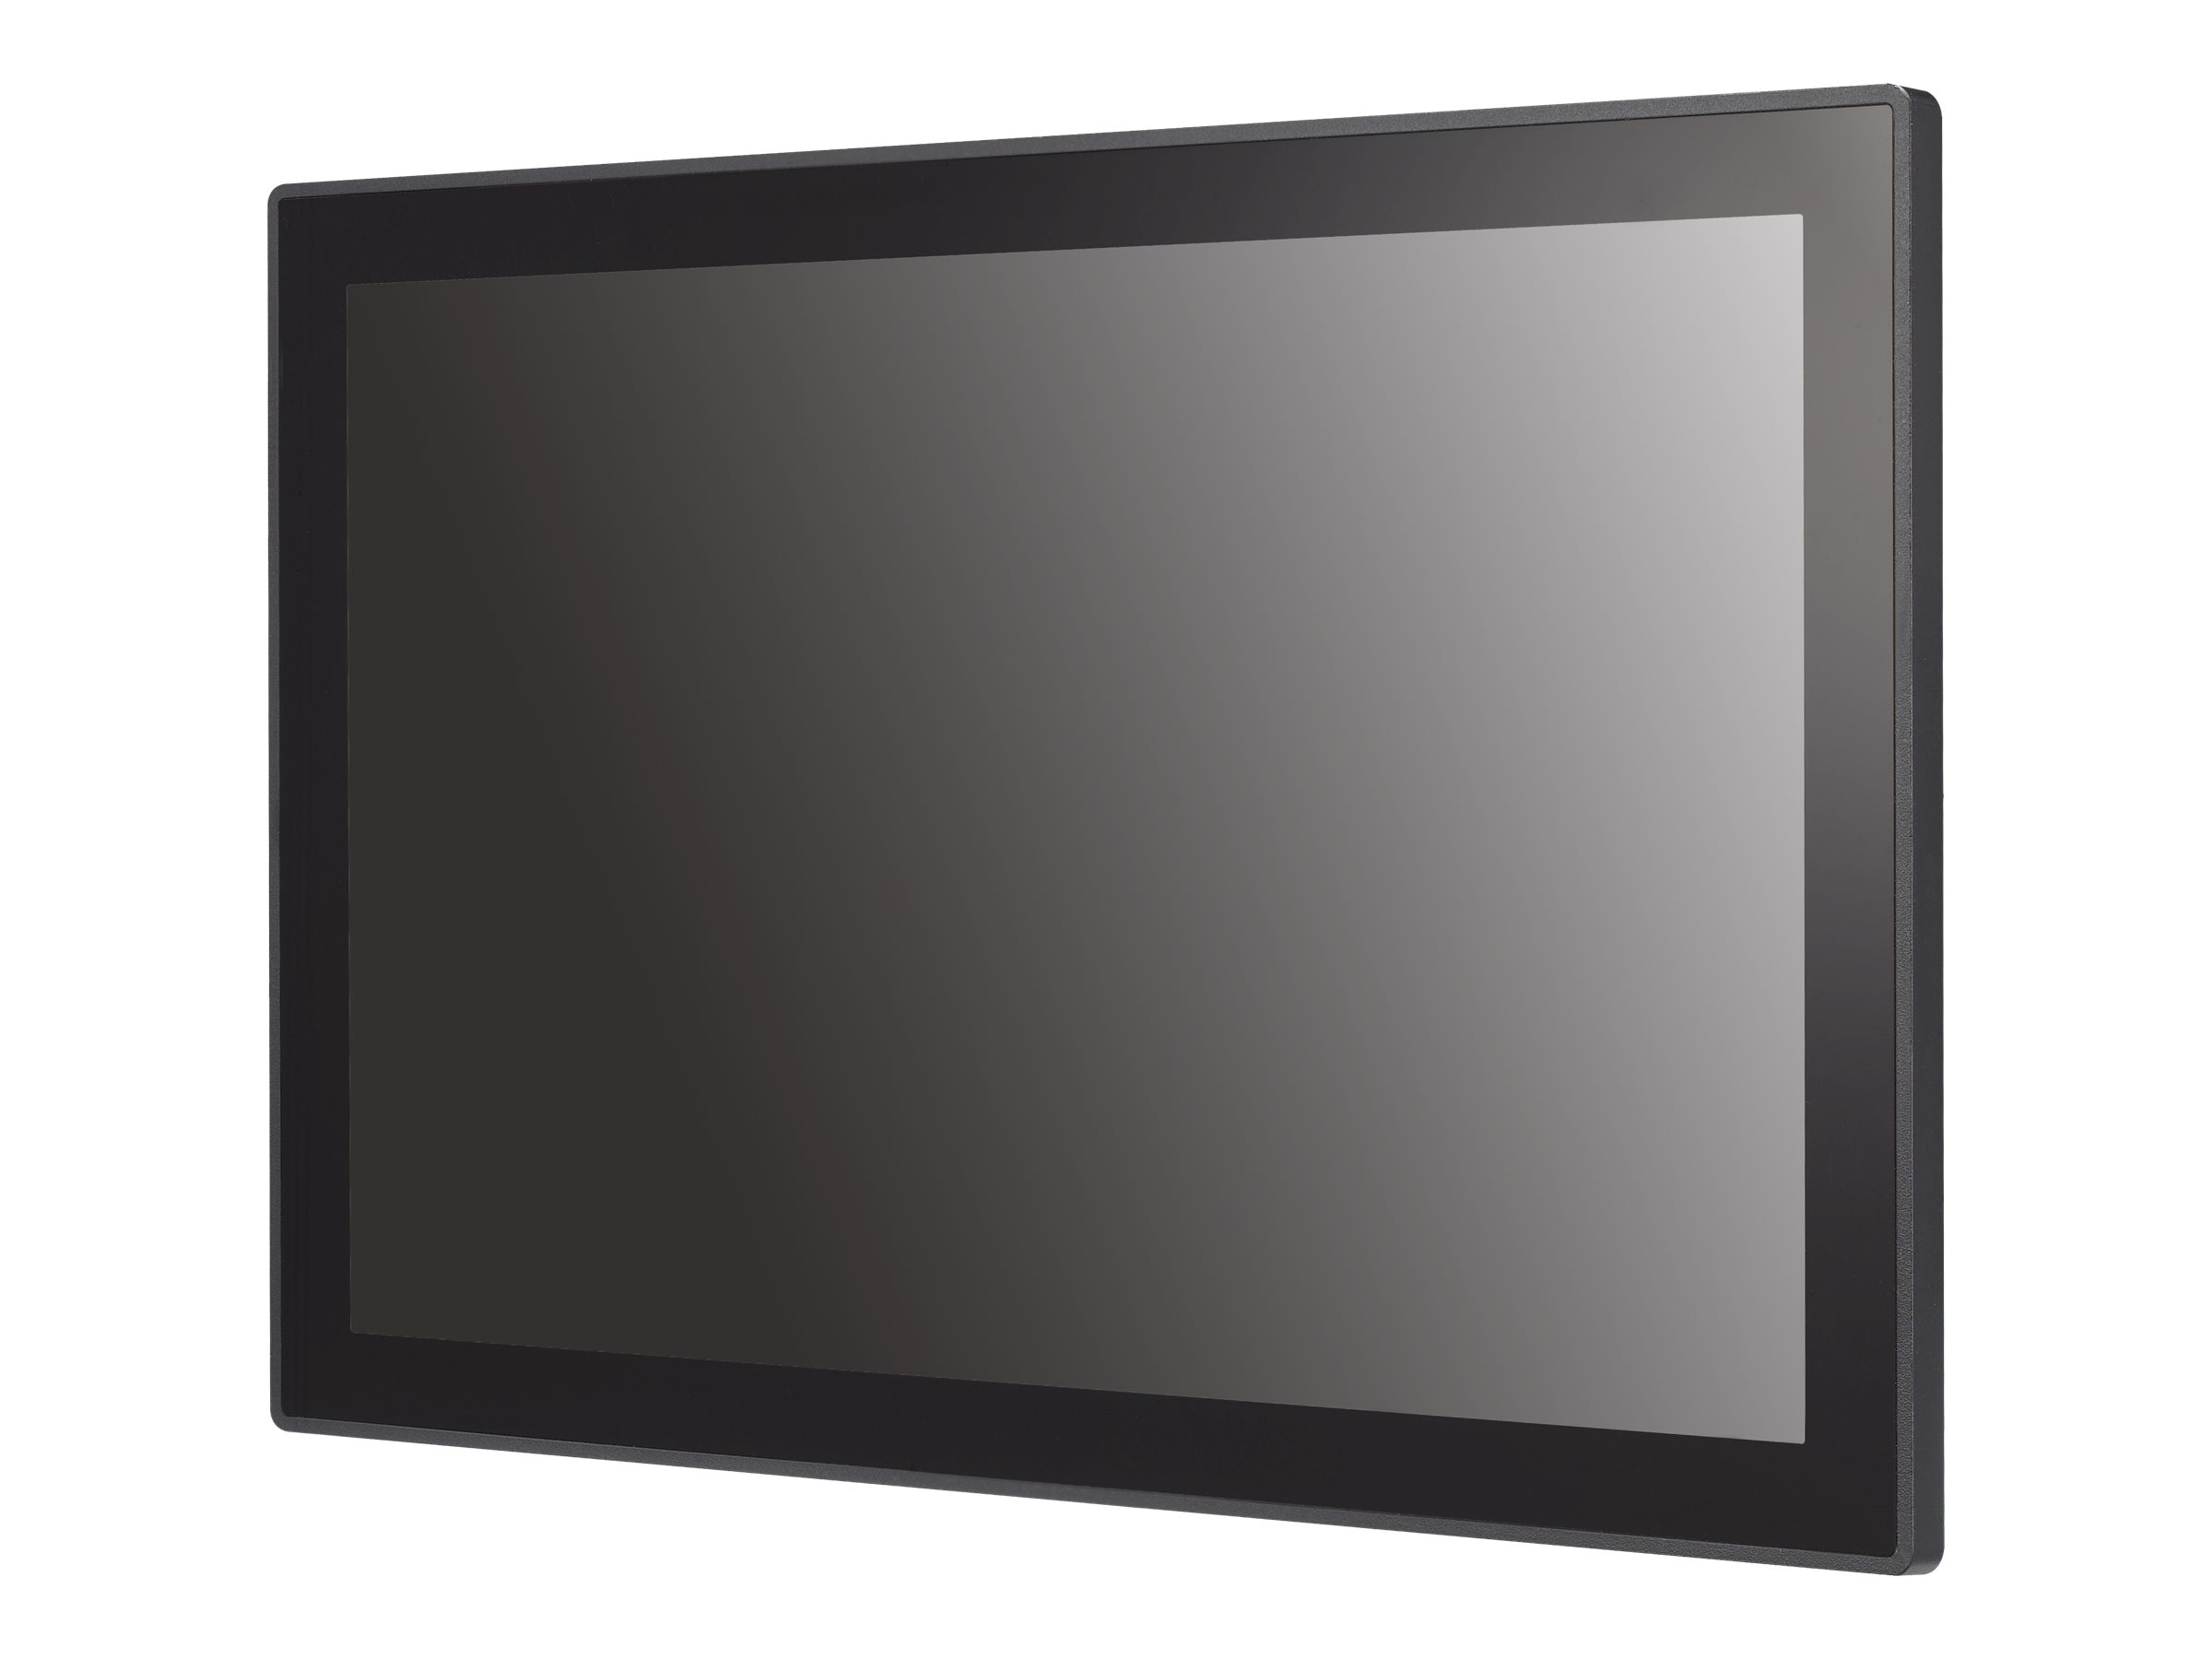 LG 10 SM3TB-B LED-LCD Touchscreen Display, Black, 10SM3TB-B